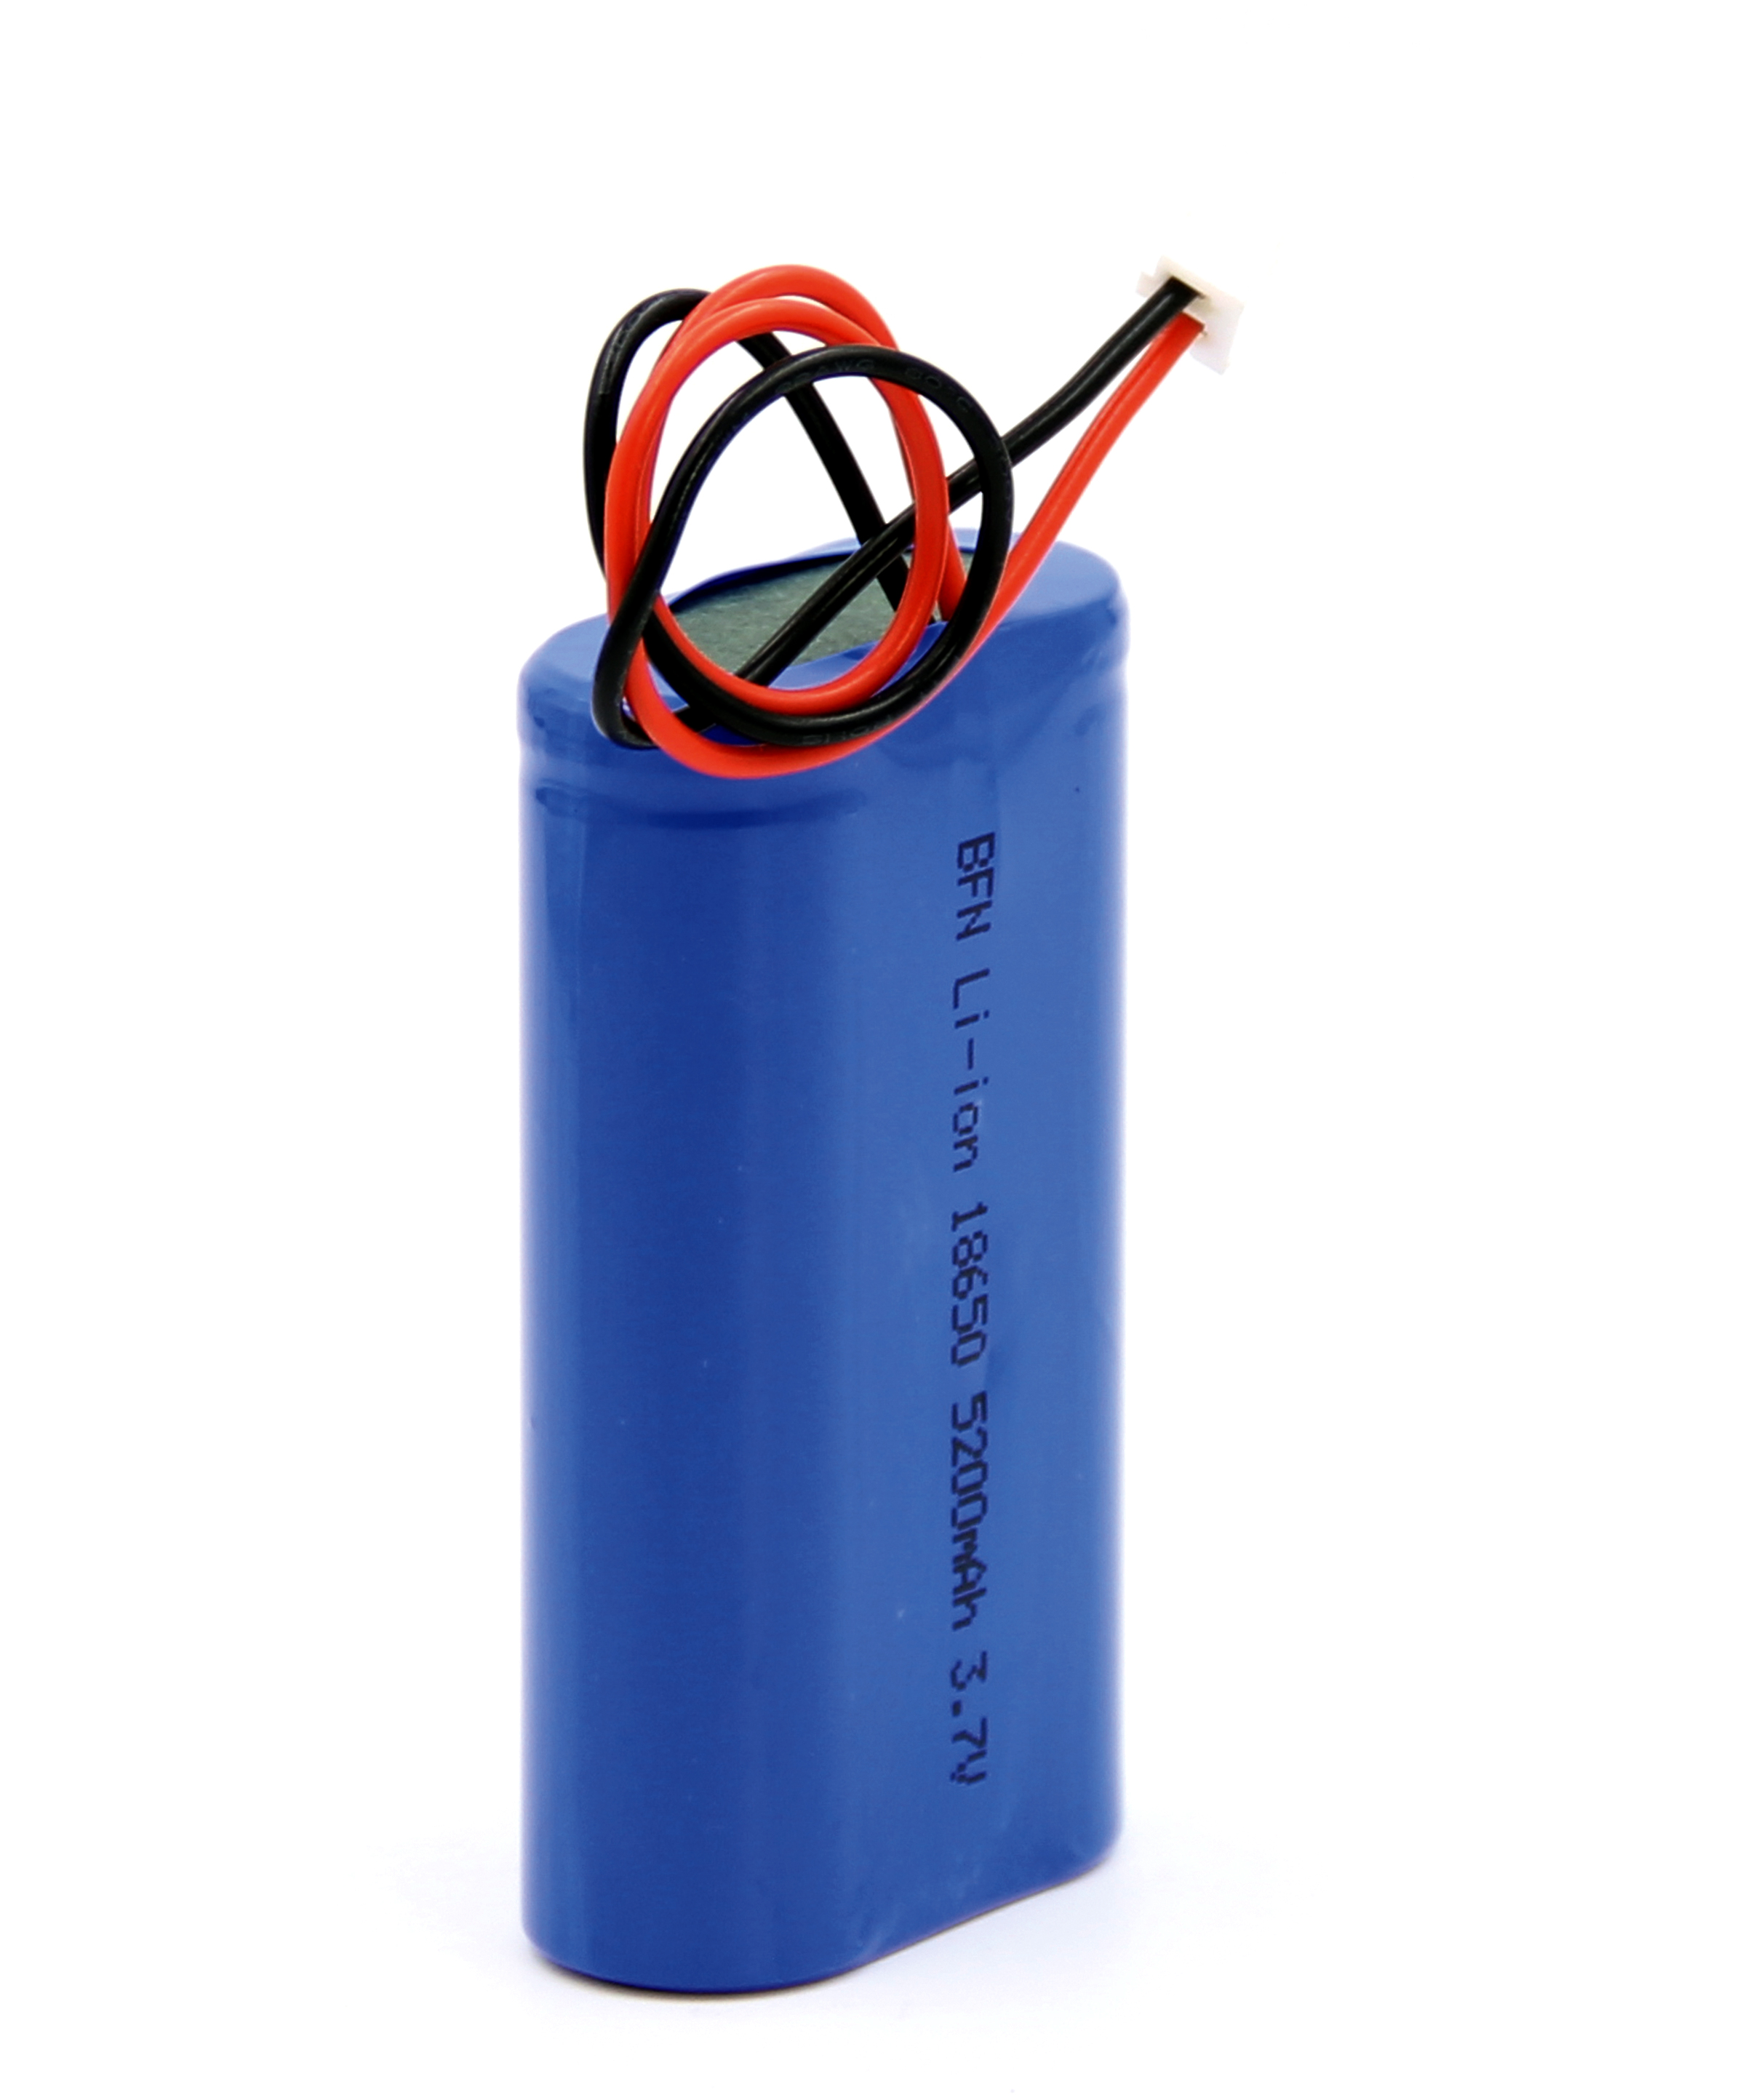 1S2P Lithium ion battery pack